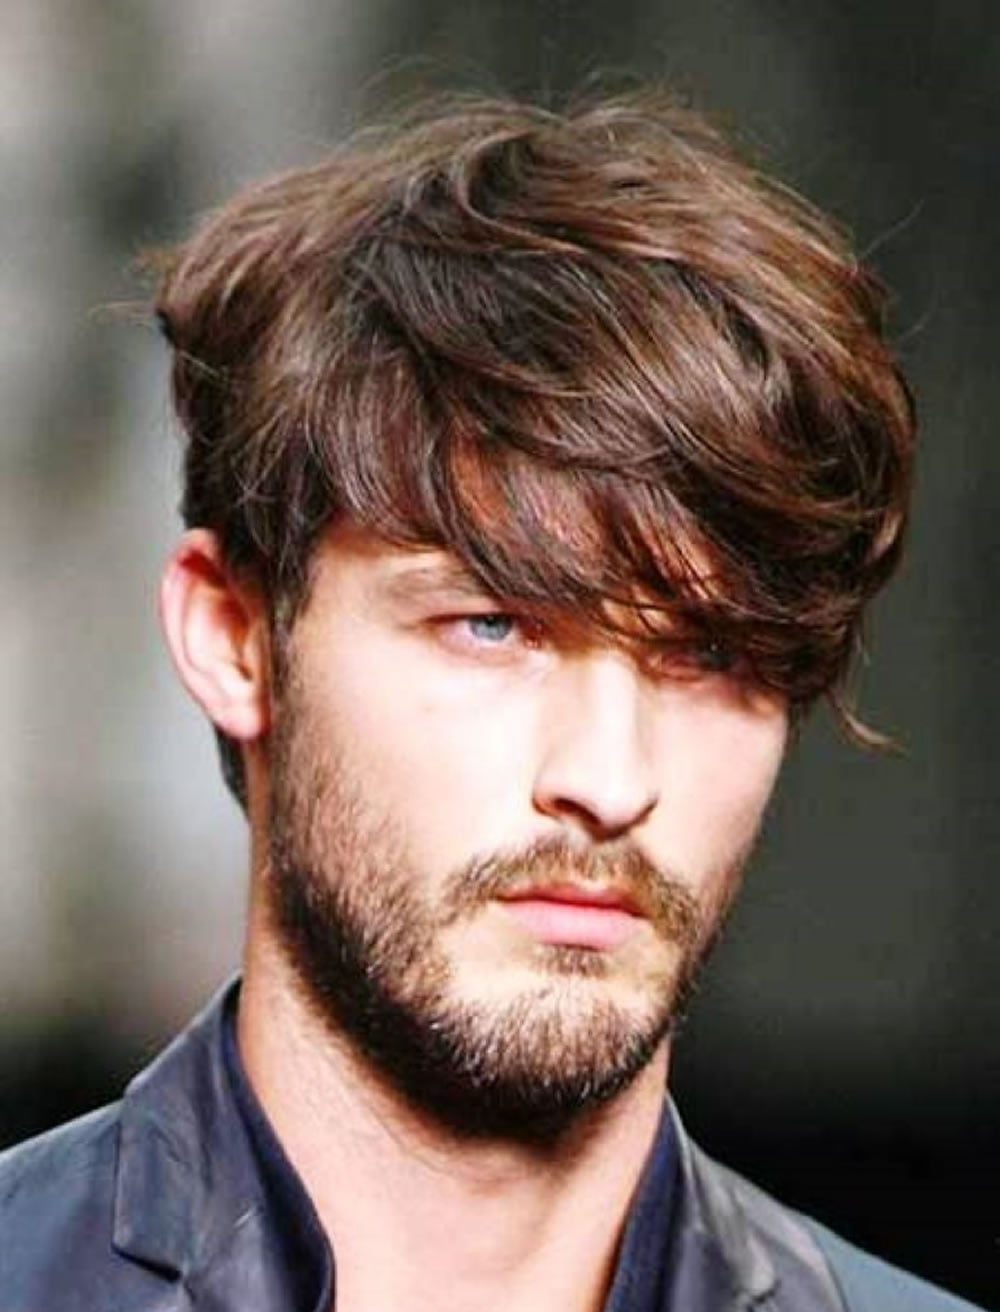 Hairstyle men 2018 indian